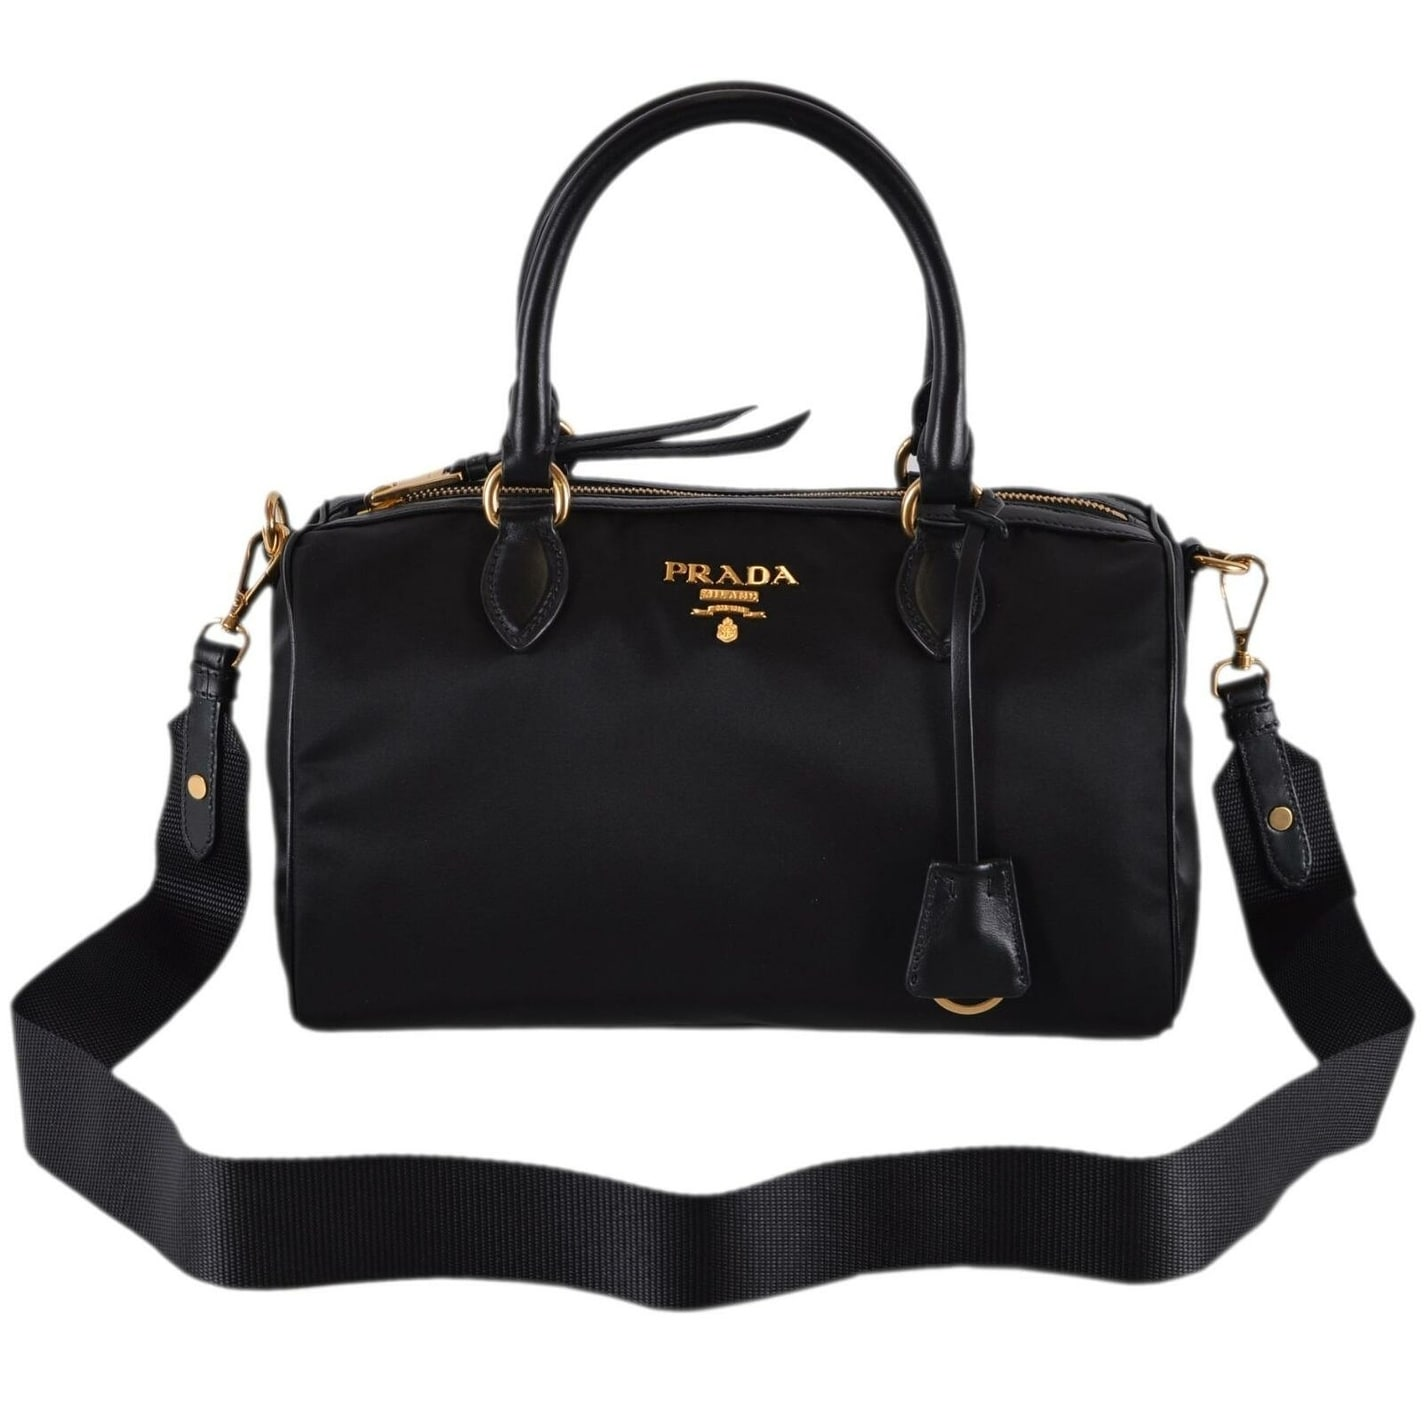 7b2808b8d9ab Shop Prada 1BB797 Black Nylon and Leather Tessuto Bauletto Satchel Purse  W/Strap - Free Shipping Today - Overstock - 27403263